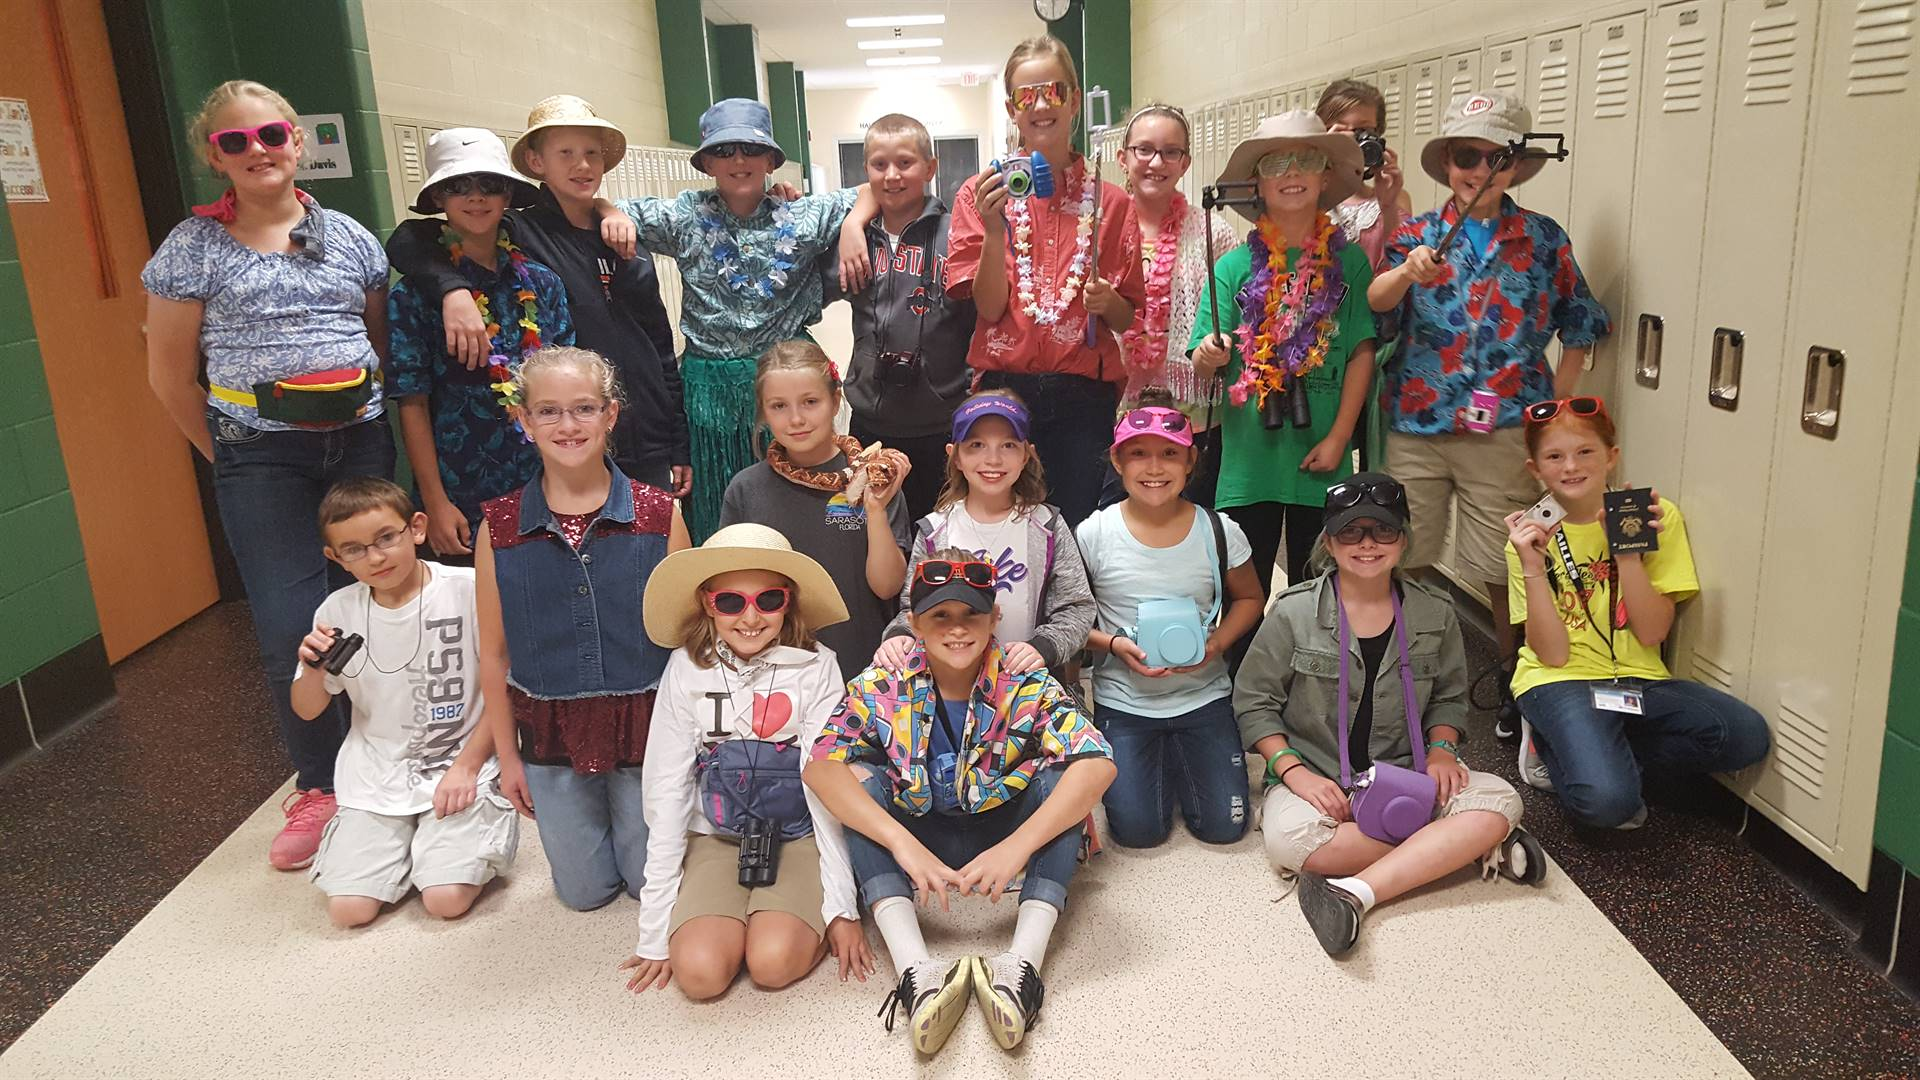 Students dress up as tourists for Spirit Week